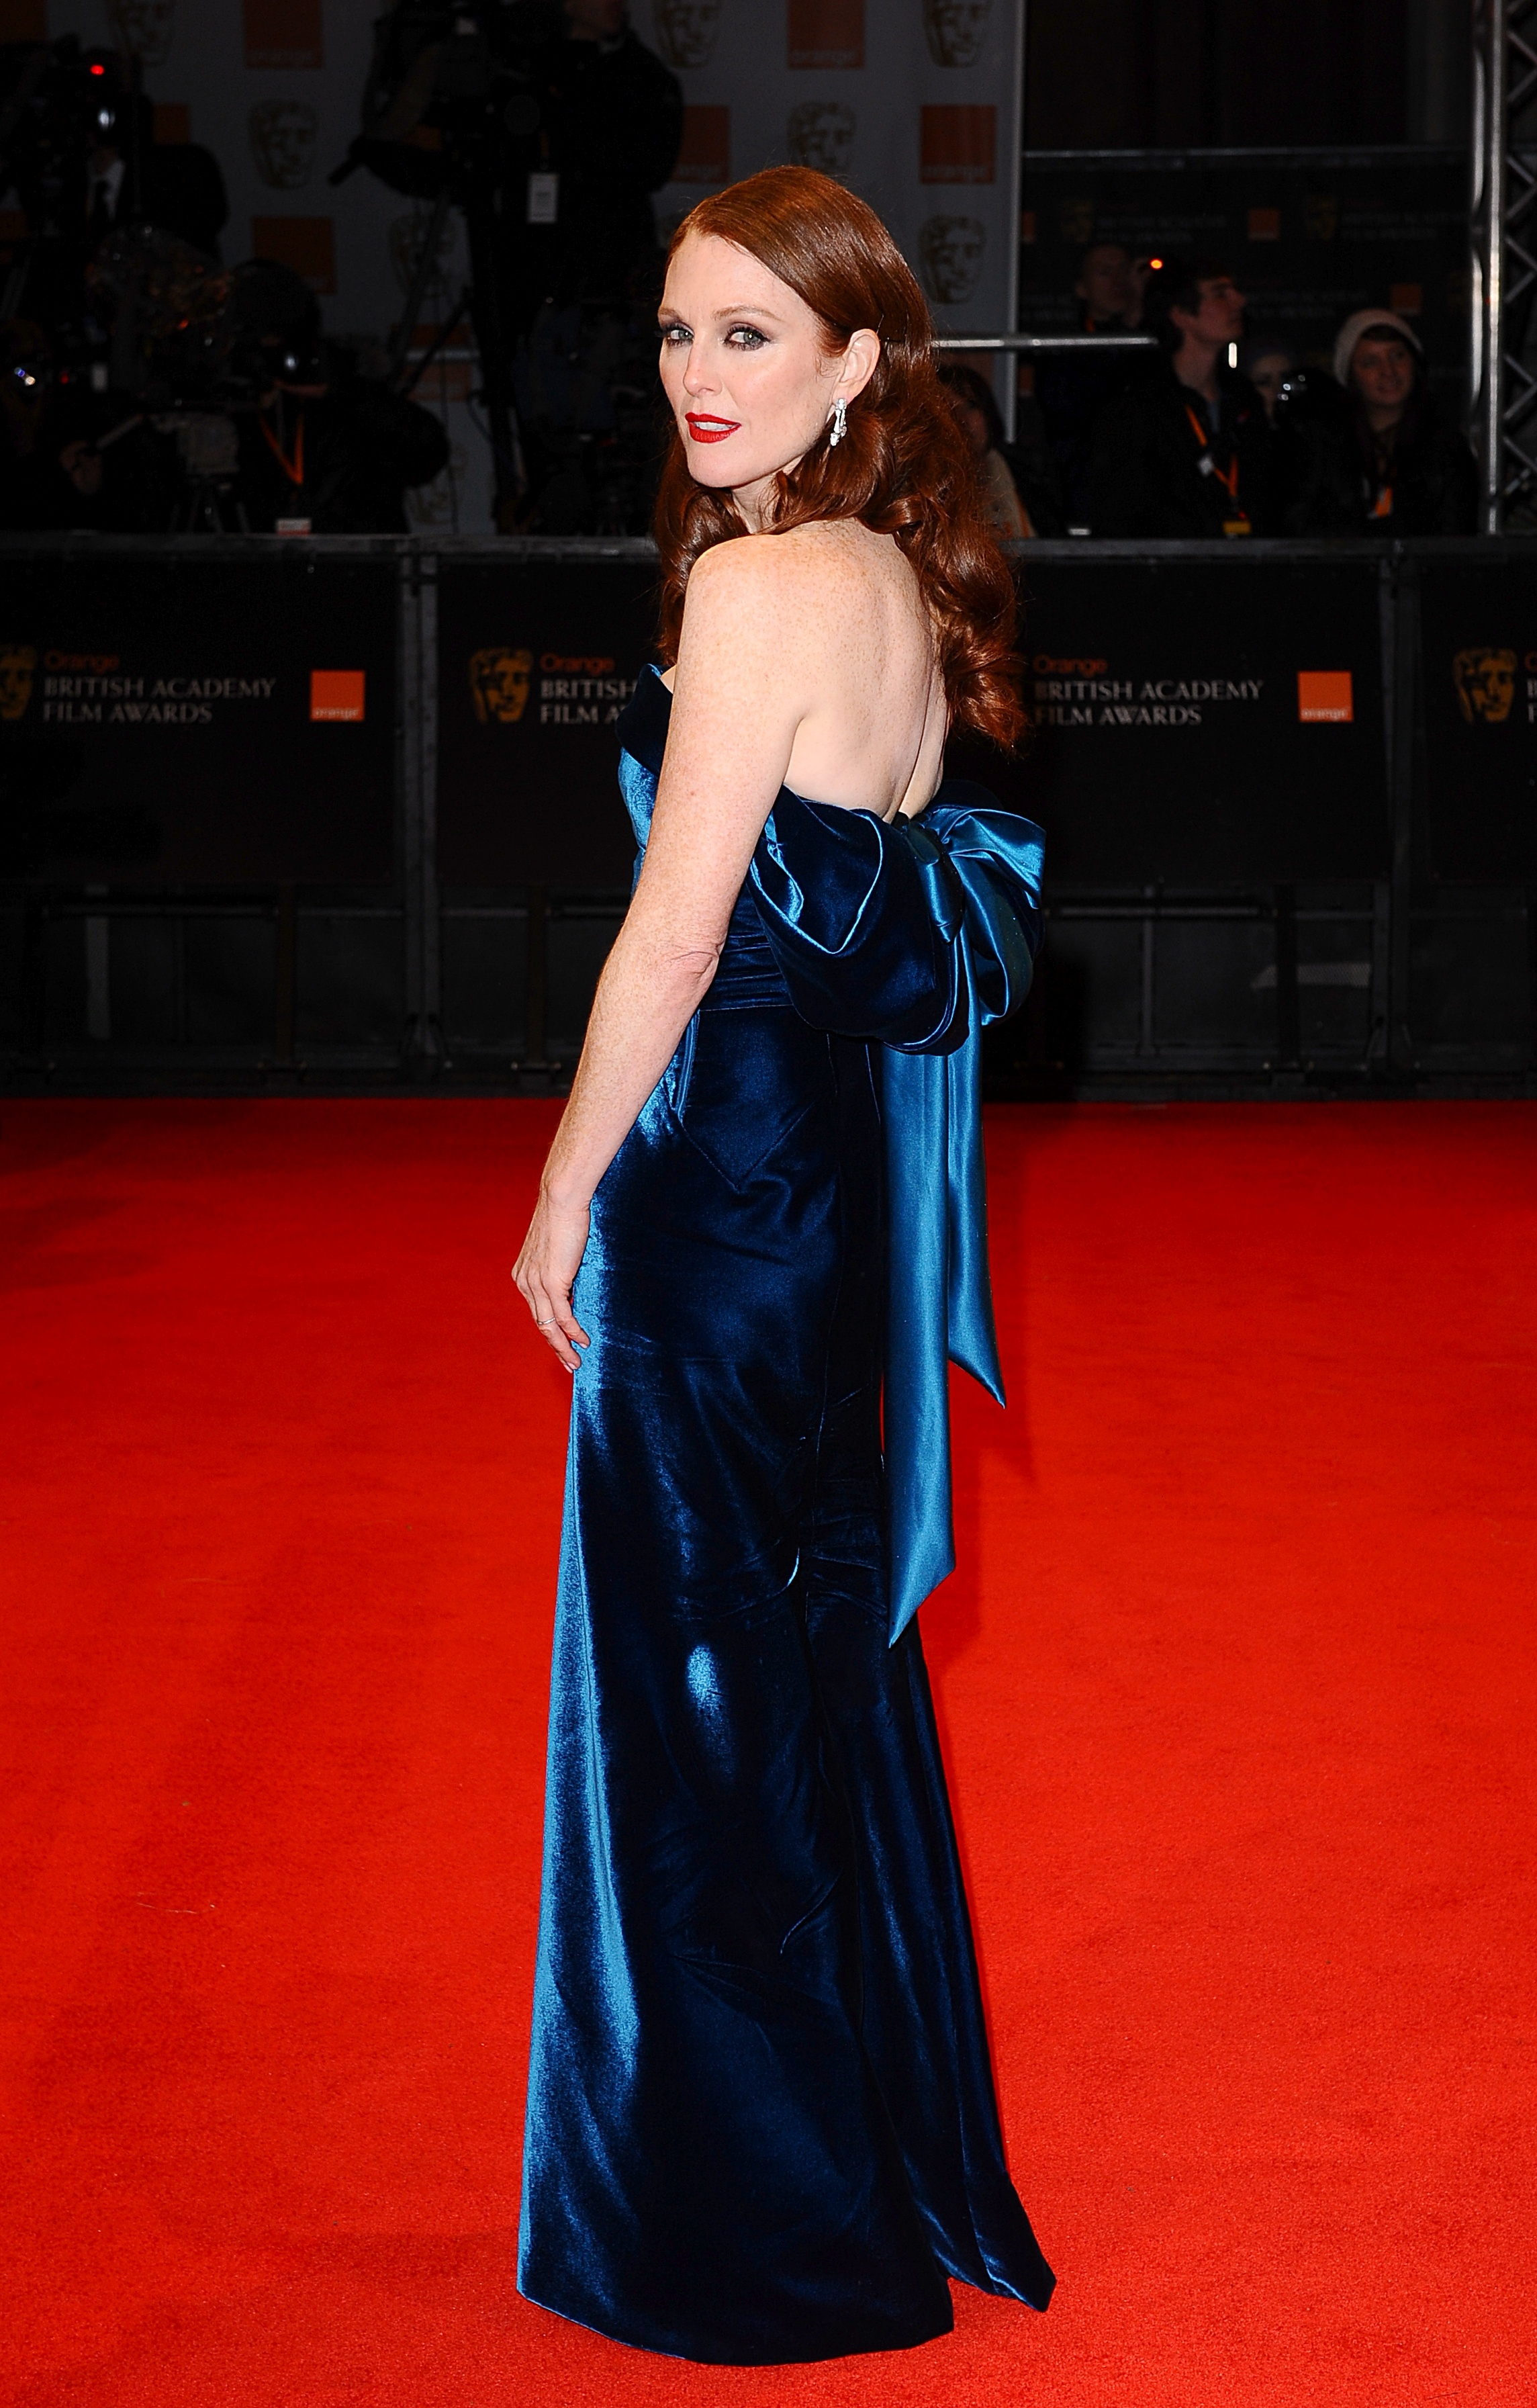 Julianne Moore at the Baftas in 2011